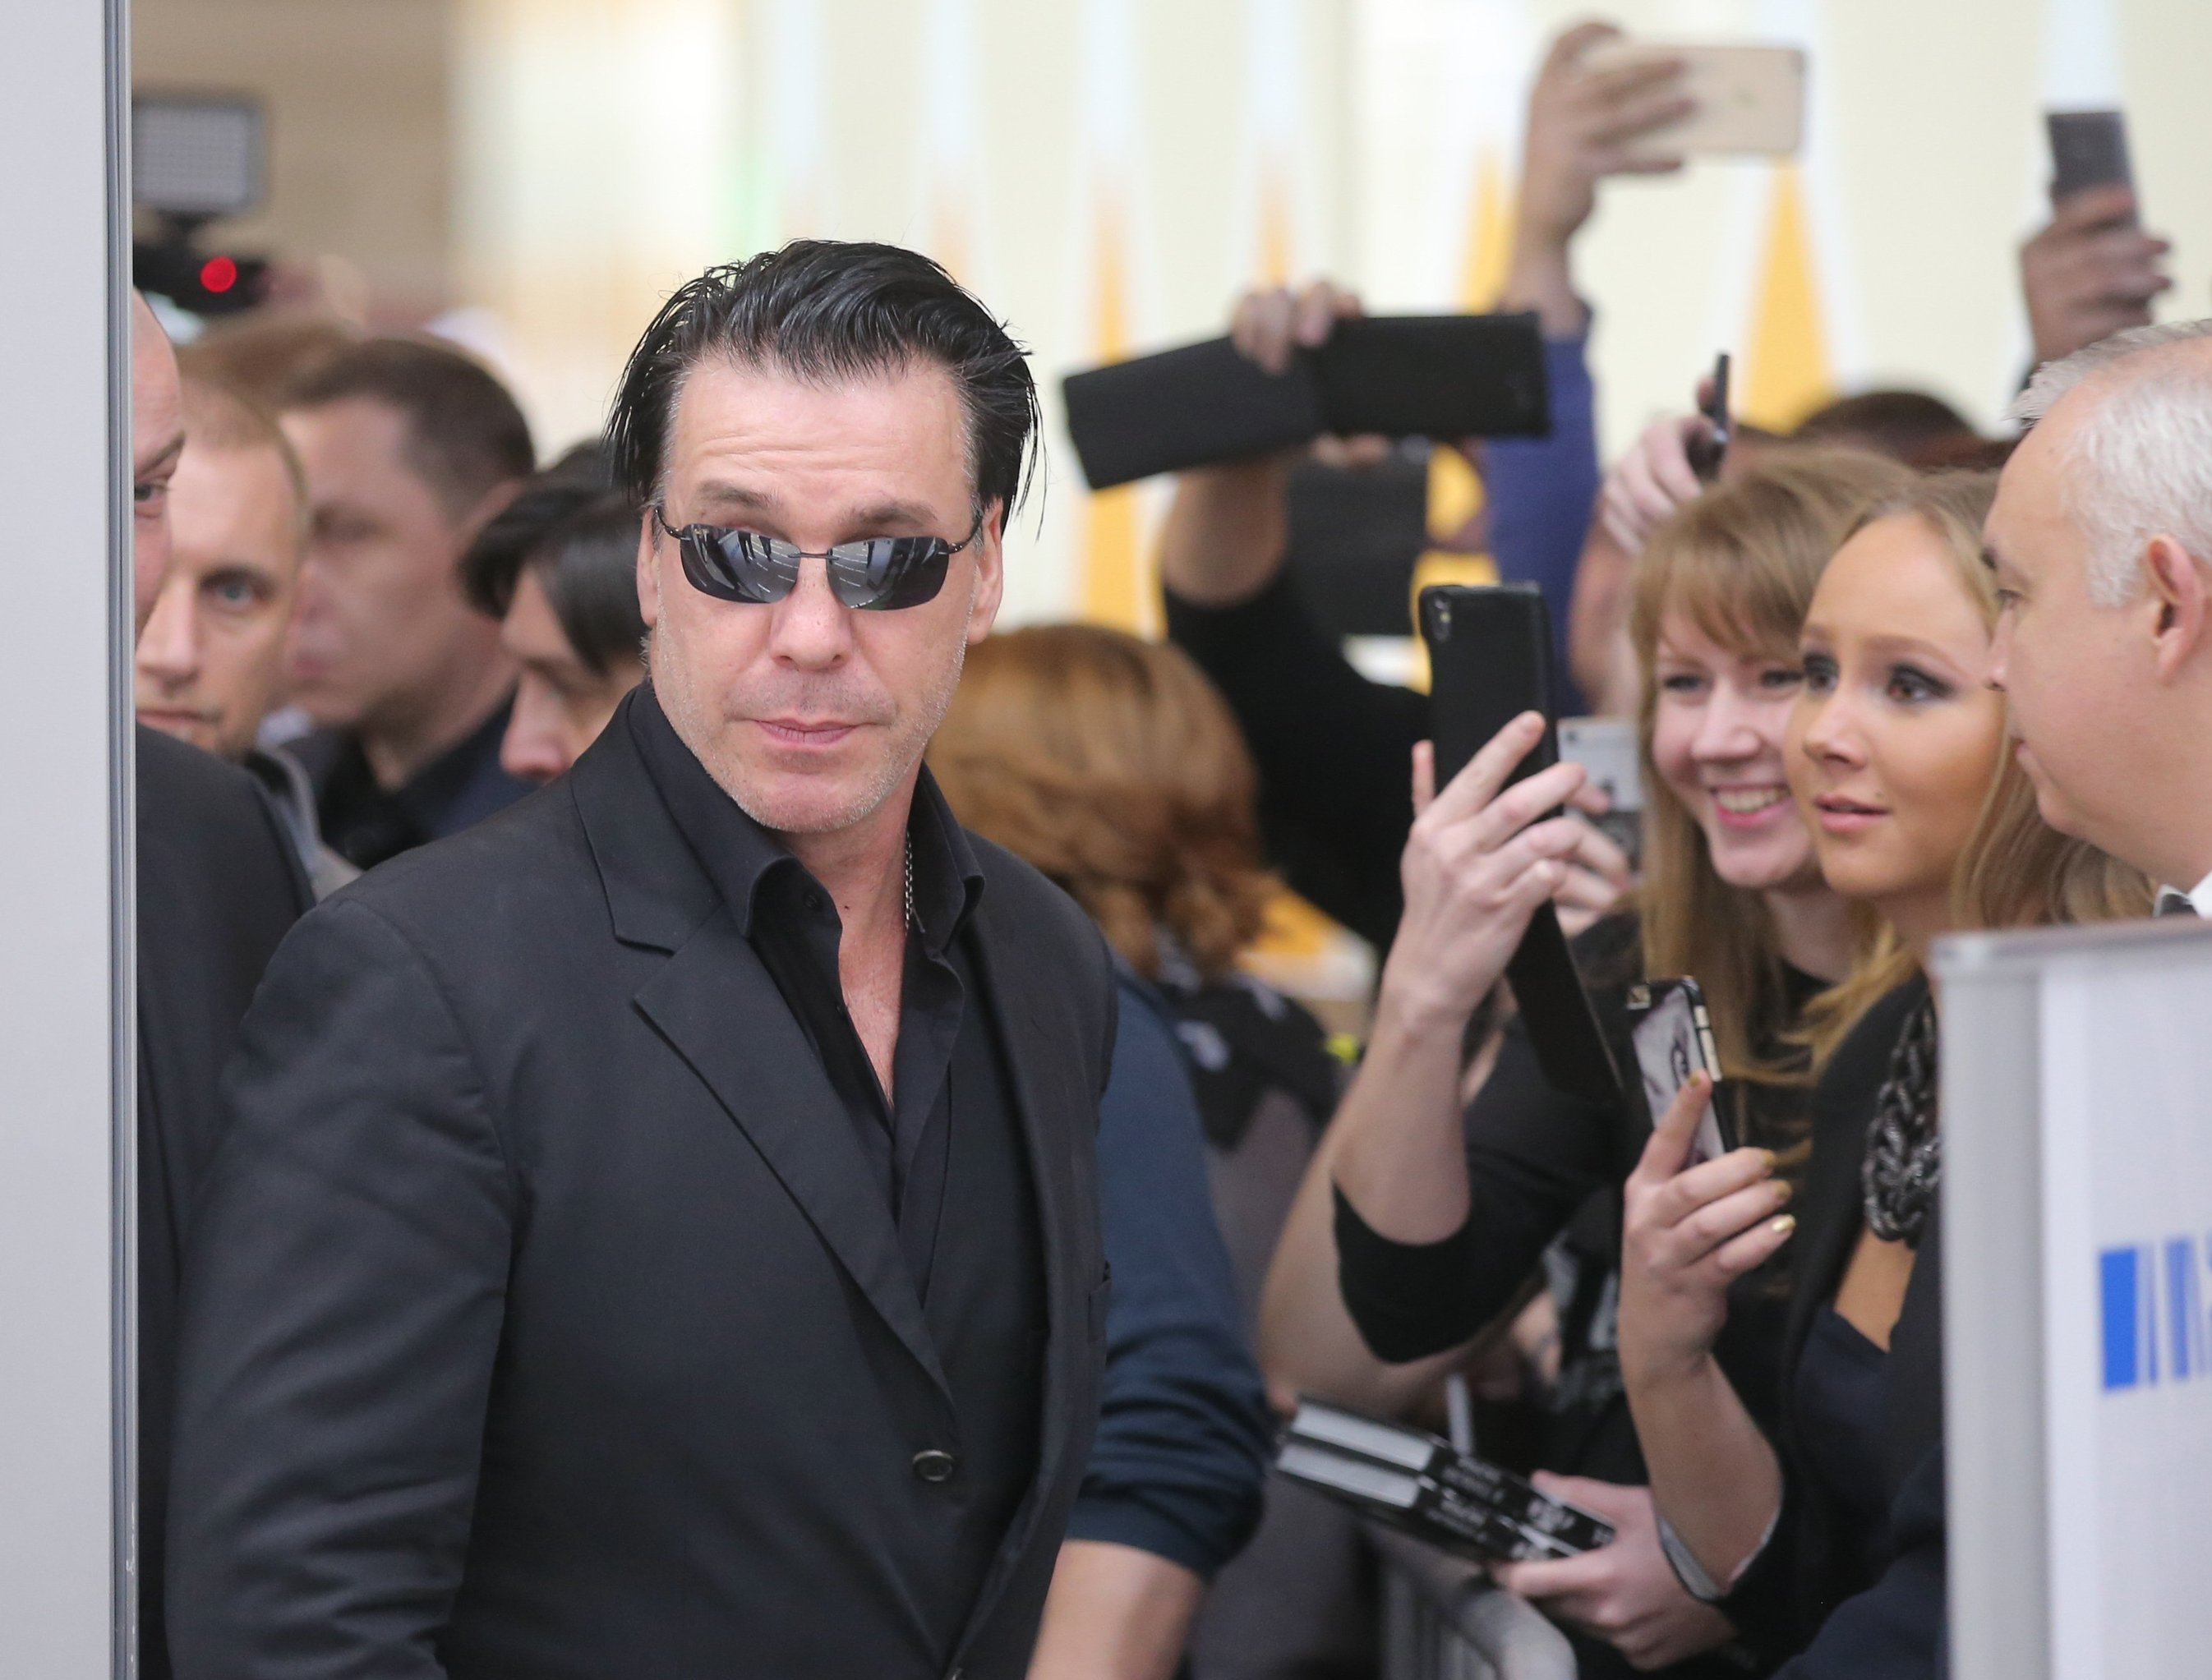 Till Lindemann, lead vocalist and frontman of the Rammstein band, at the presentation of book On Quiet Nights at the Columbus retail center, Moscow